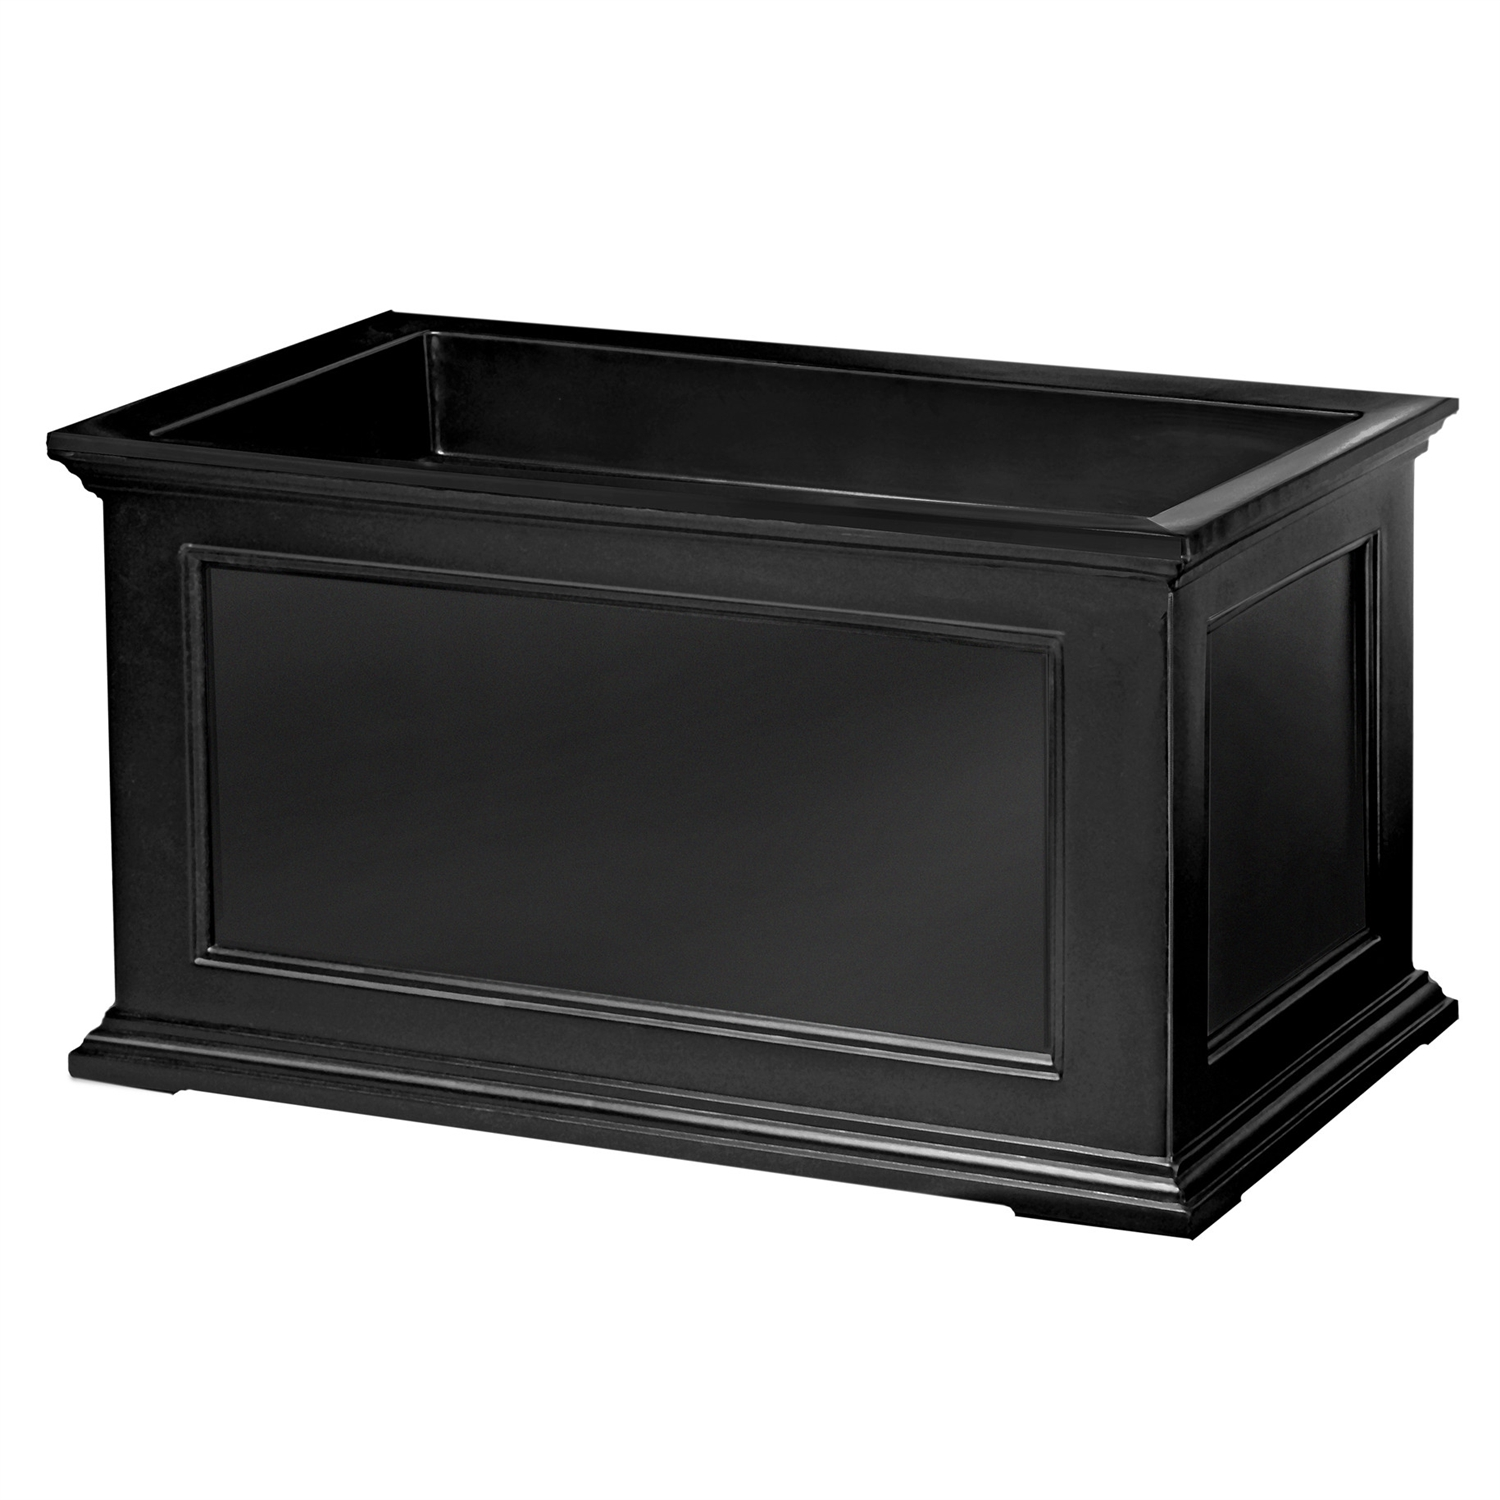 20 x 36 inch Patio Porch Planter Box in Black Polyethylene, N2036P179 :  This 20 x 36 inch Patio Porch Planter Box in Black Polyethylene would be a great addition to your home. Have the look of wood without the upkeep with these high-grade polyethylene planters. Long-lasting beauty, durability and quality. Built-in water reservoir encourages healthy plant growth by allowing plants to practically water themselves. Beautiful New England design adds a charming touch to any patio or deck; Sub-irrigation water system, encourages root growth; Fairfield Planter collection; 15 Year limited warranty.